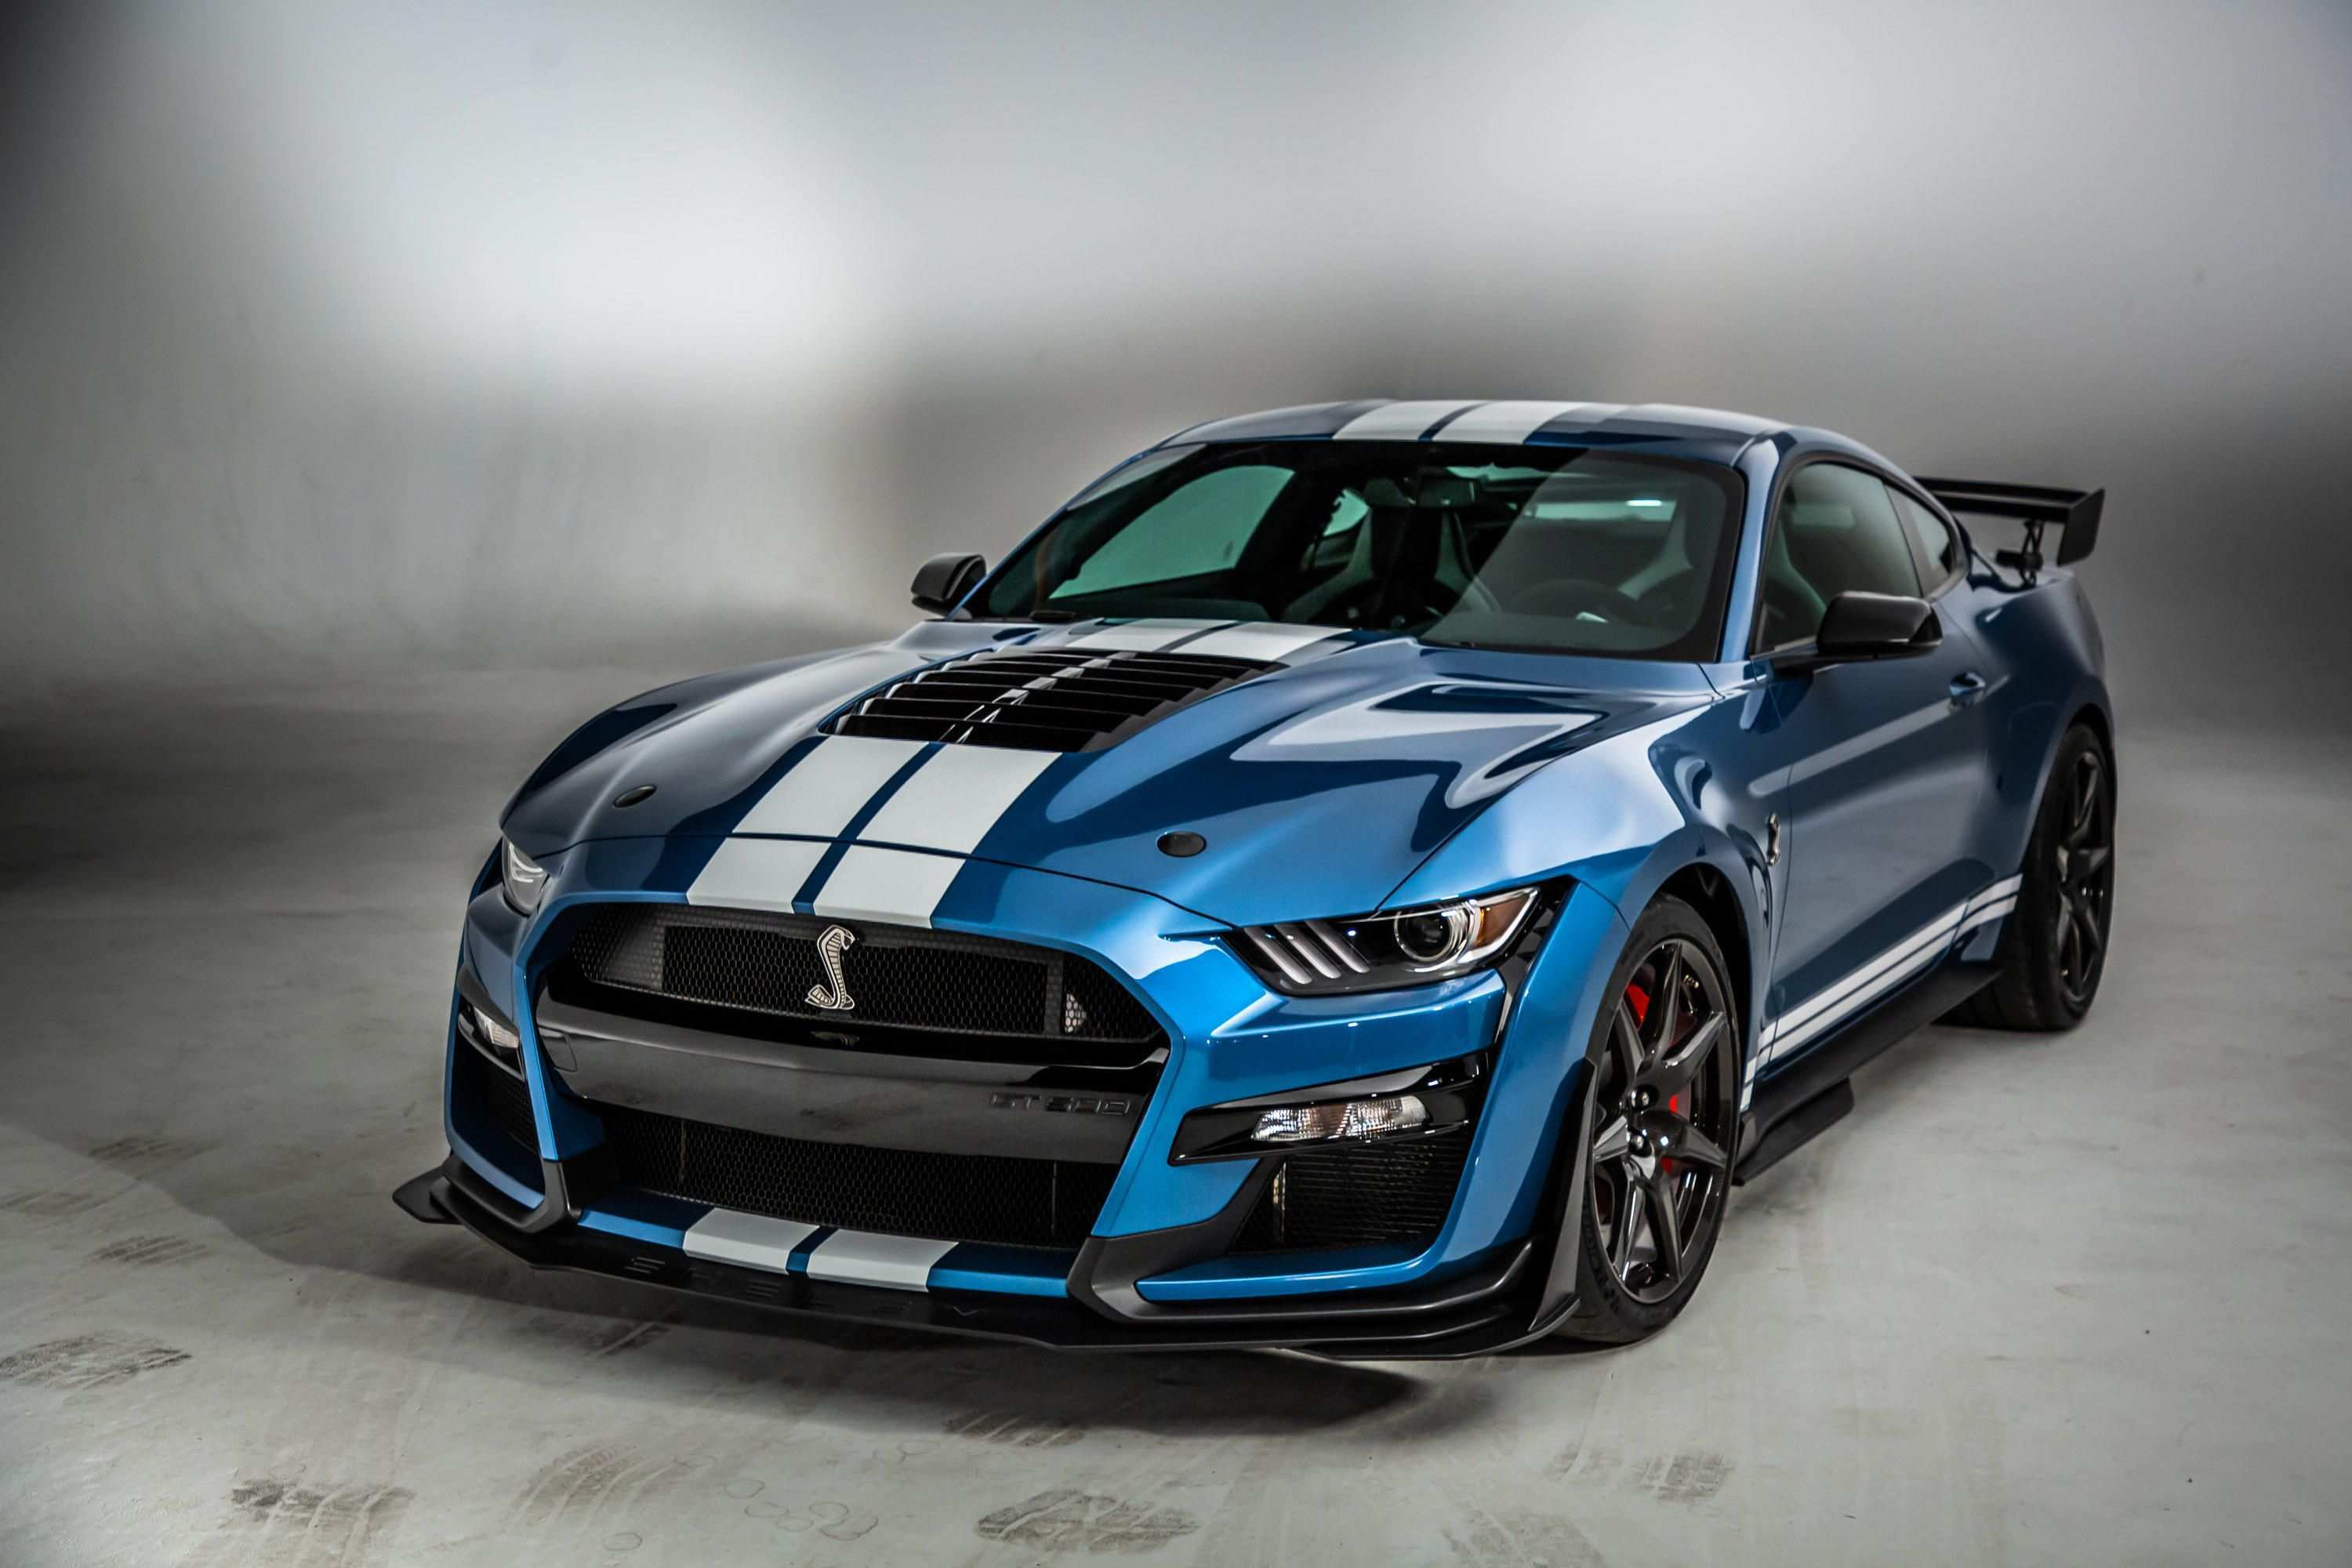 61 The 2020 Ford Mustang Shelby Gt 350 Rumors